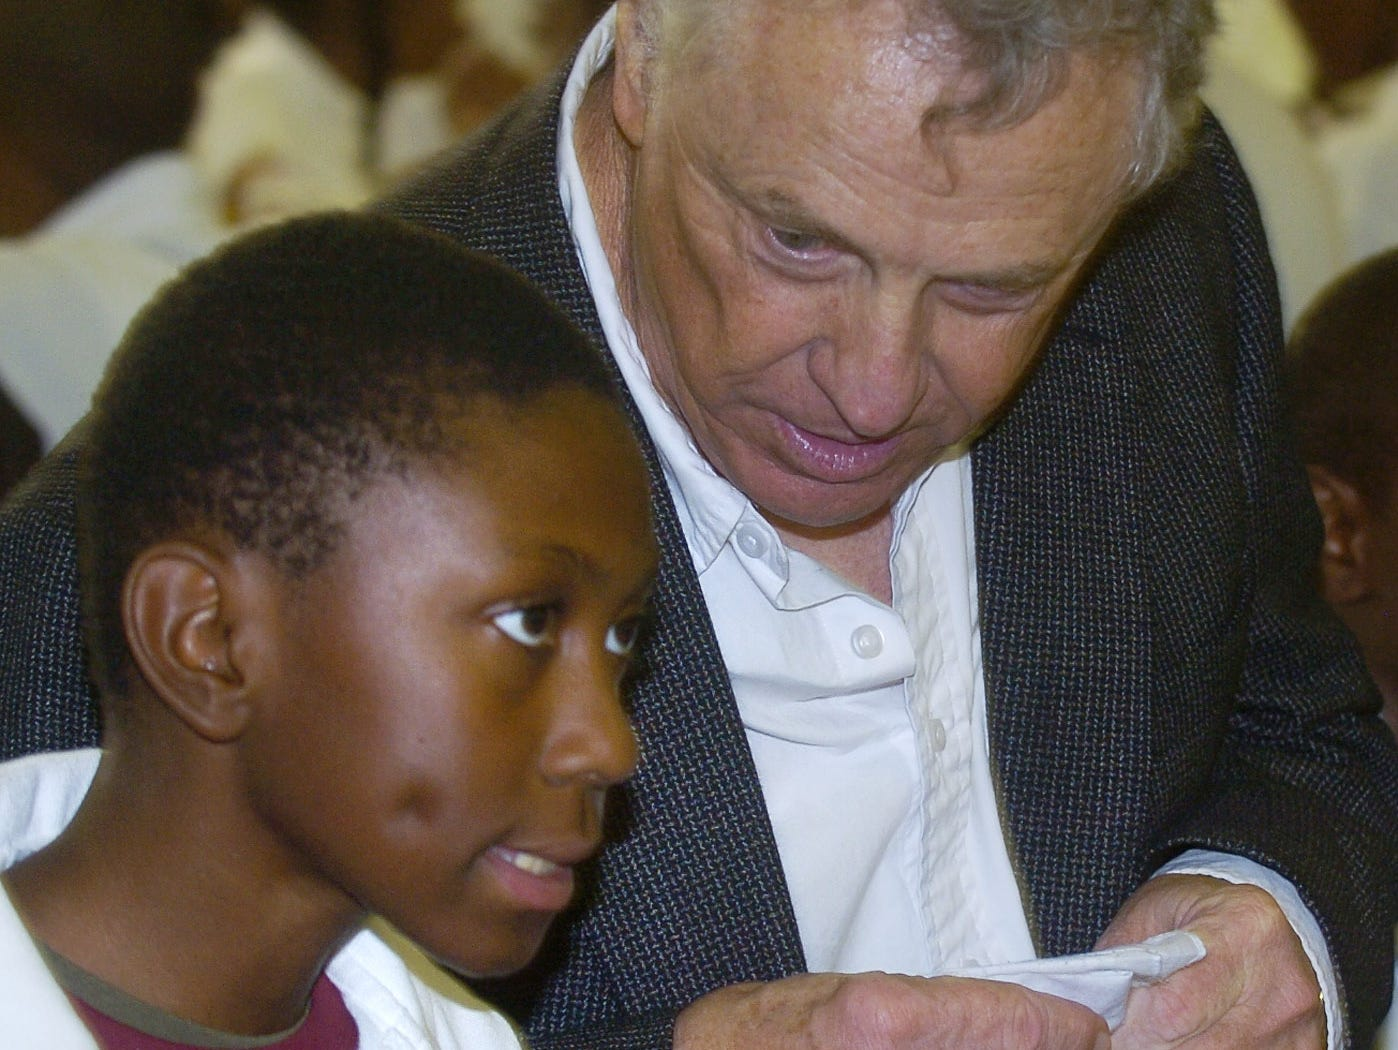 November 13, 2007 - Southern Poverty Law Center co-founder Morris Dees, right, visits with Justin Downer while eating lunch with students during the Mix It Up at Lunch Day program at Floyd Elementary School in Montgomery, Ala. on Tuesday November 13, 2007. Mix It Up is part of the Teaching Tolerance program. 10,000 schools and over four million students are taking part in the program. (Montgomery Advertiser, Mickey Welsh)